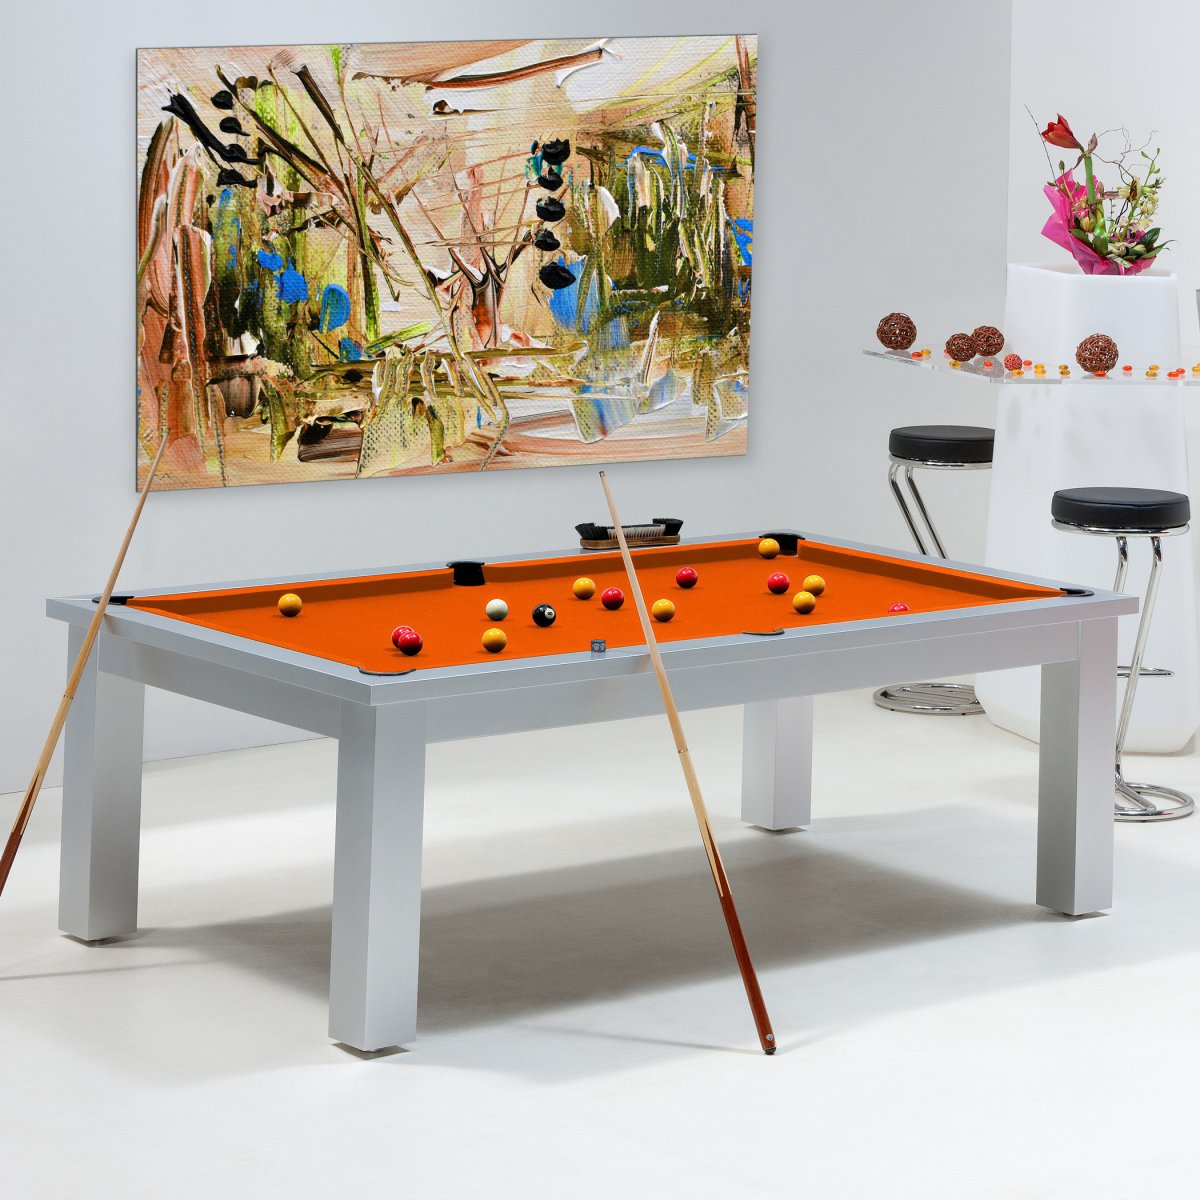 billard table billard convertible billard table memphis. Black Bedroom Furniture Sets. Home Design Ideas